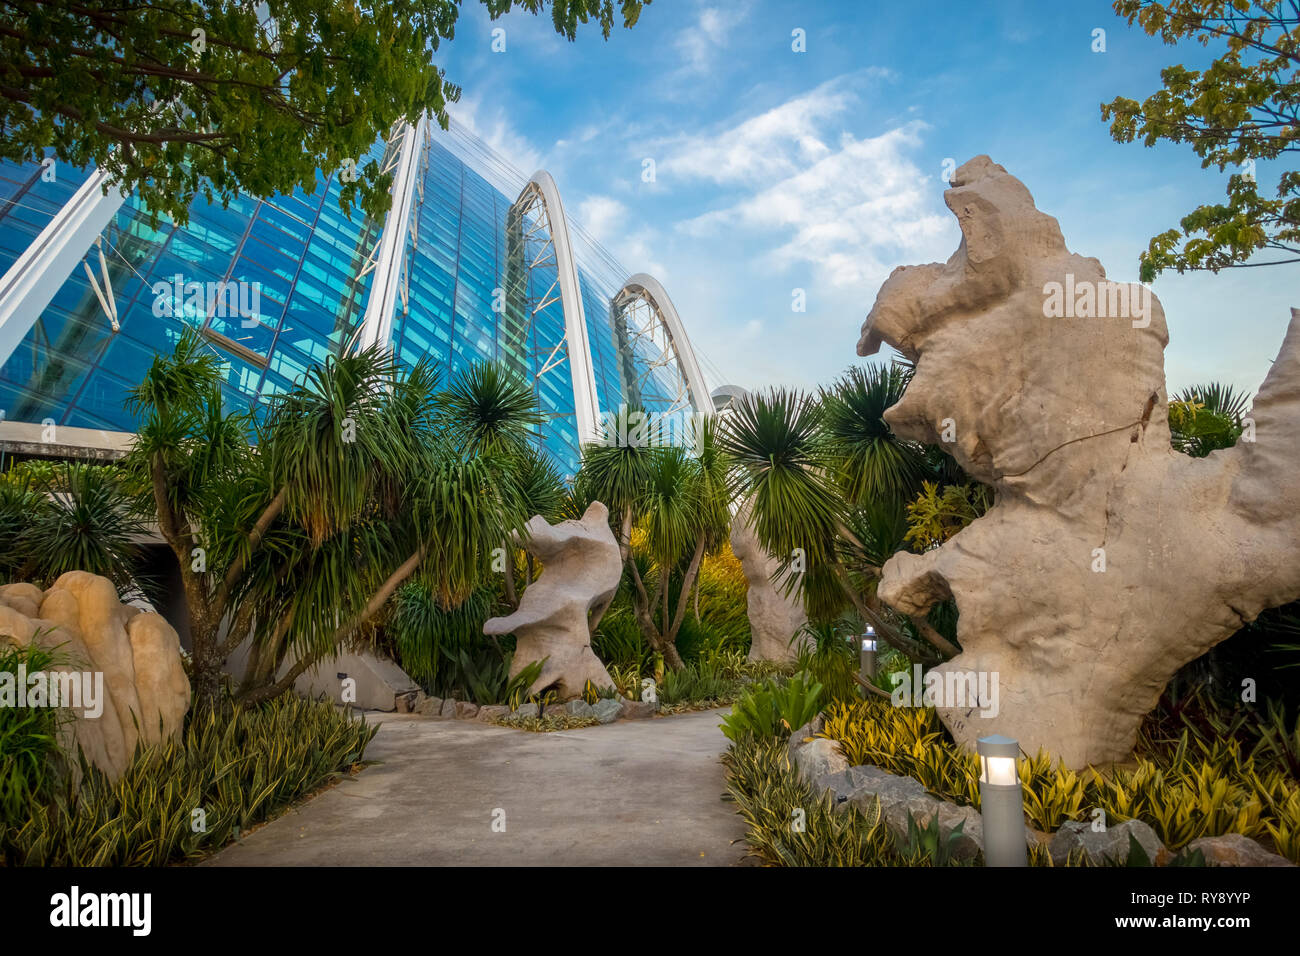 Flower Dome and Rock Garden Path - Daytime at Gardens By The bay - Singapore - Stock Image